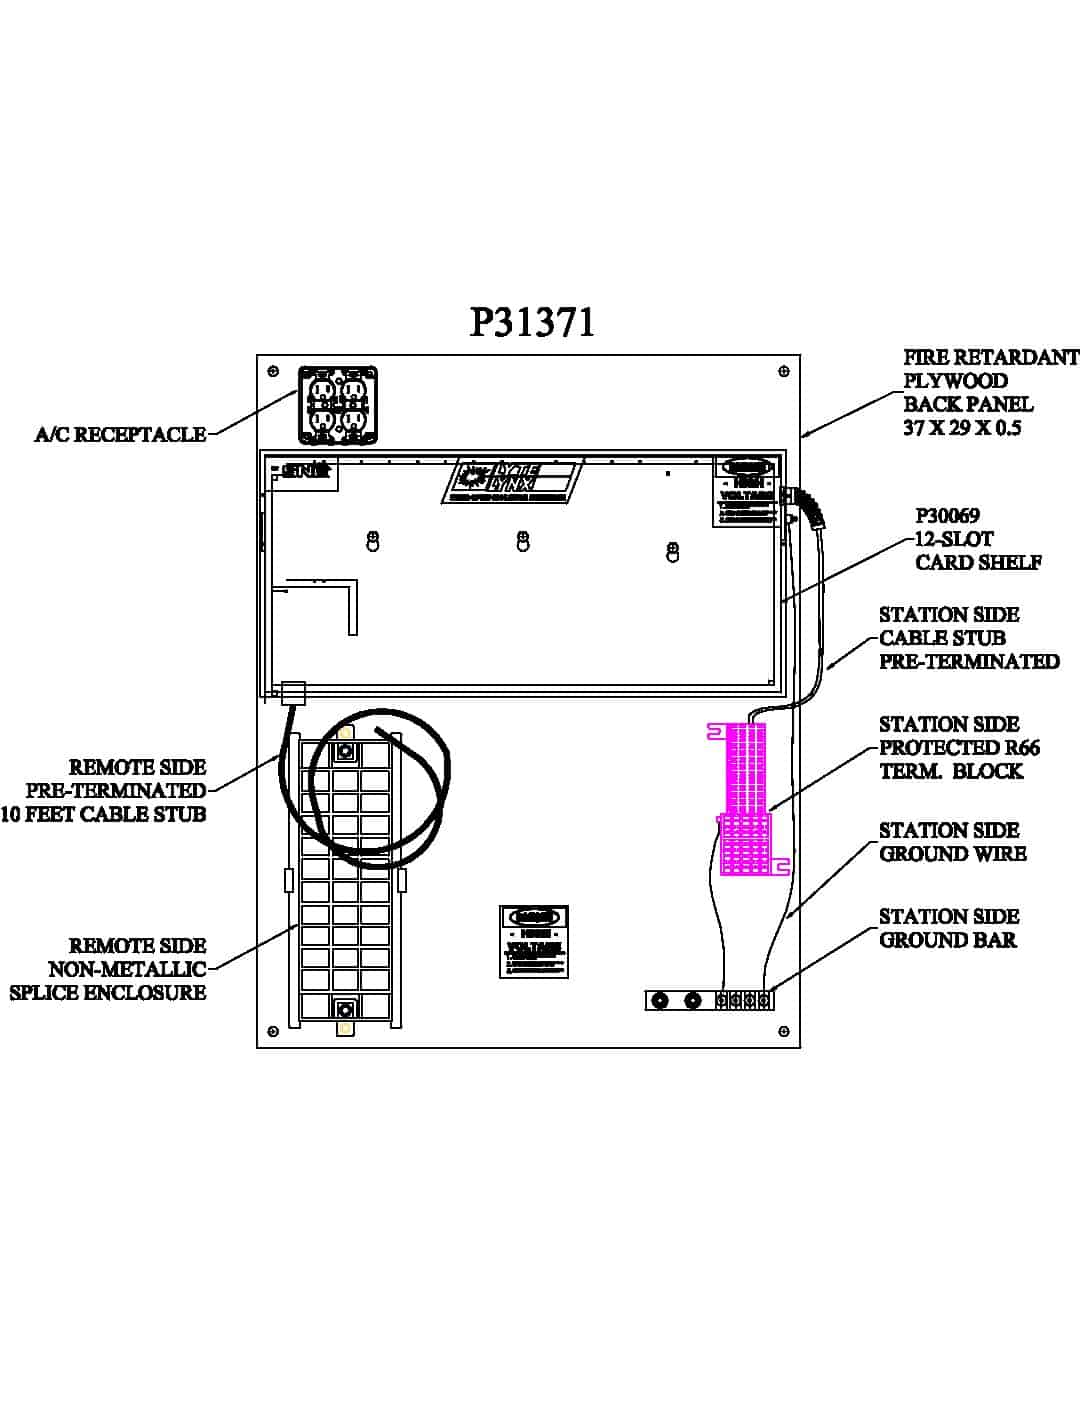 P31371 Turnkey Protection Packages – 12 slot PDF thumbnail